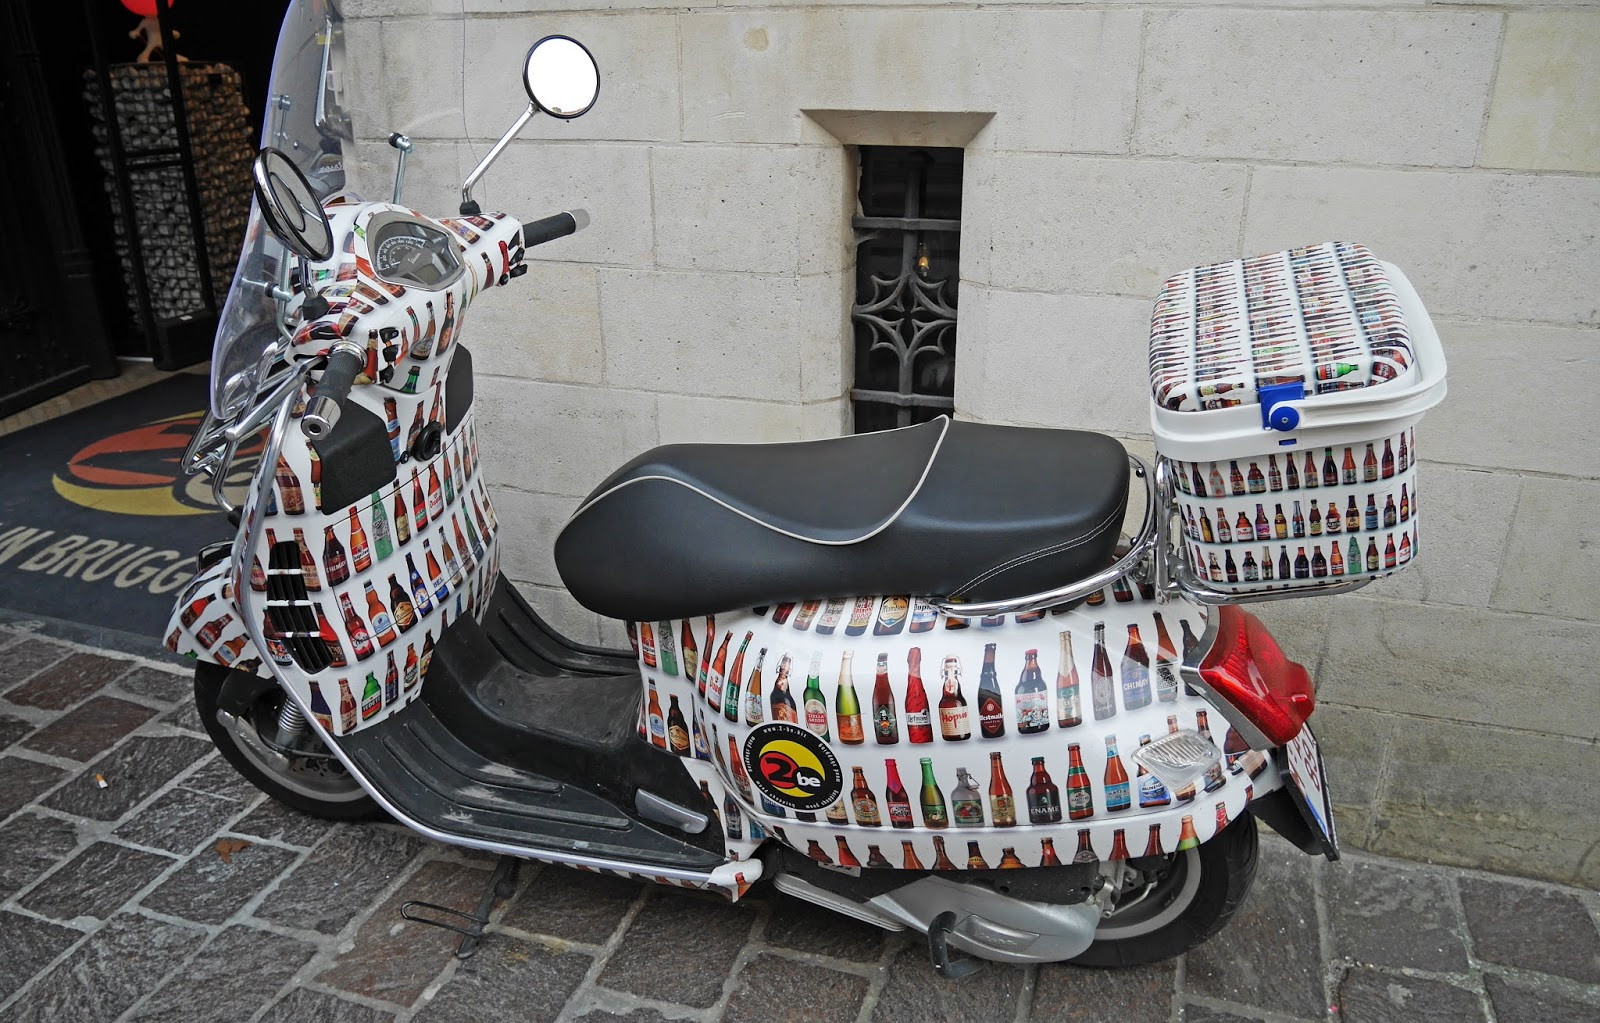 Belgian beer-themed motorbike outside The Beer Wall, Bruges